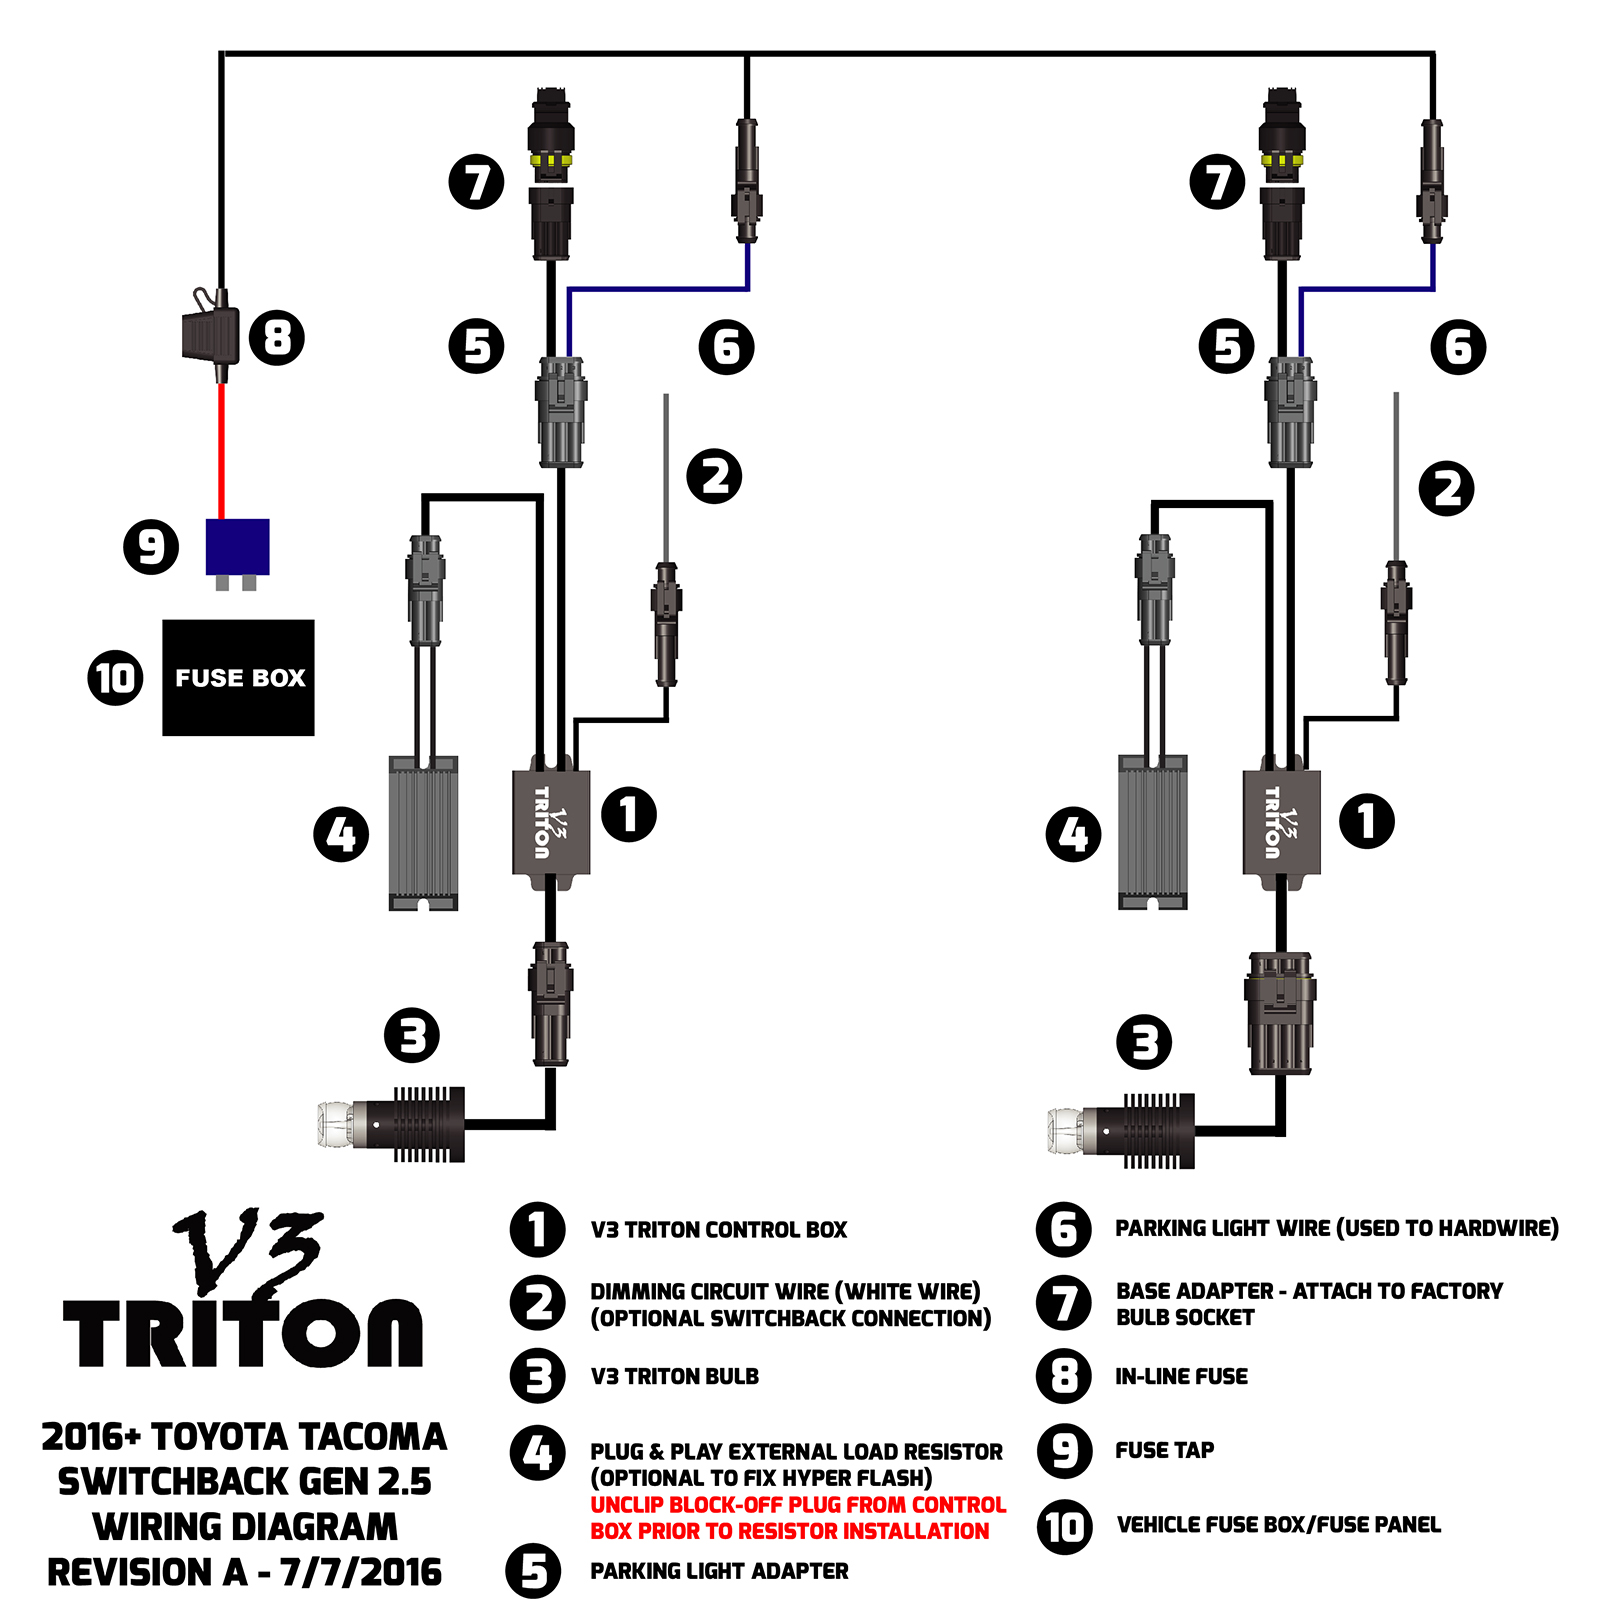 V3_Gen_2.5_A_Tacoma wiring diagrams Toyota Wiring Diagrams Color Code at bakdesigns.co